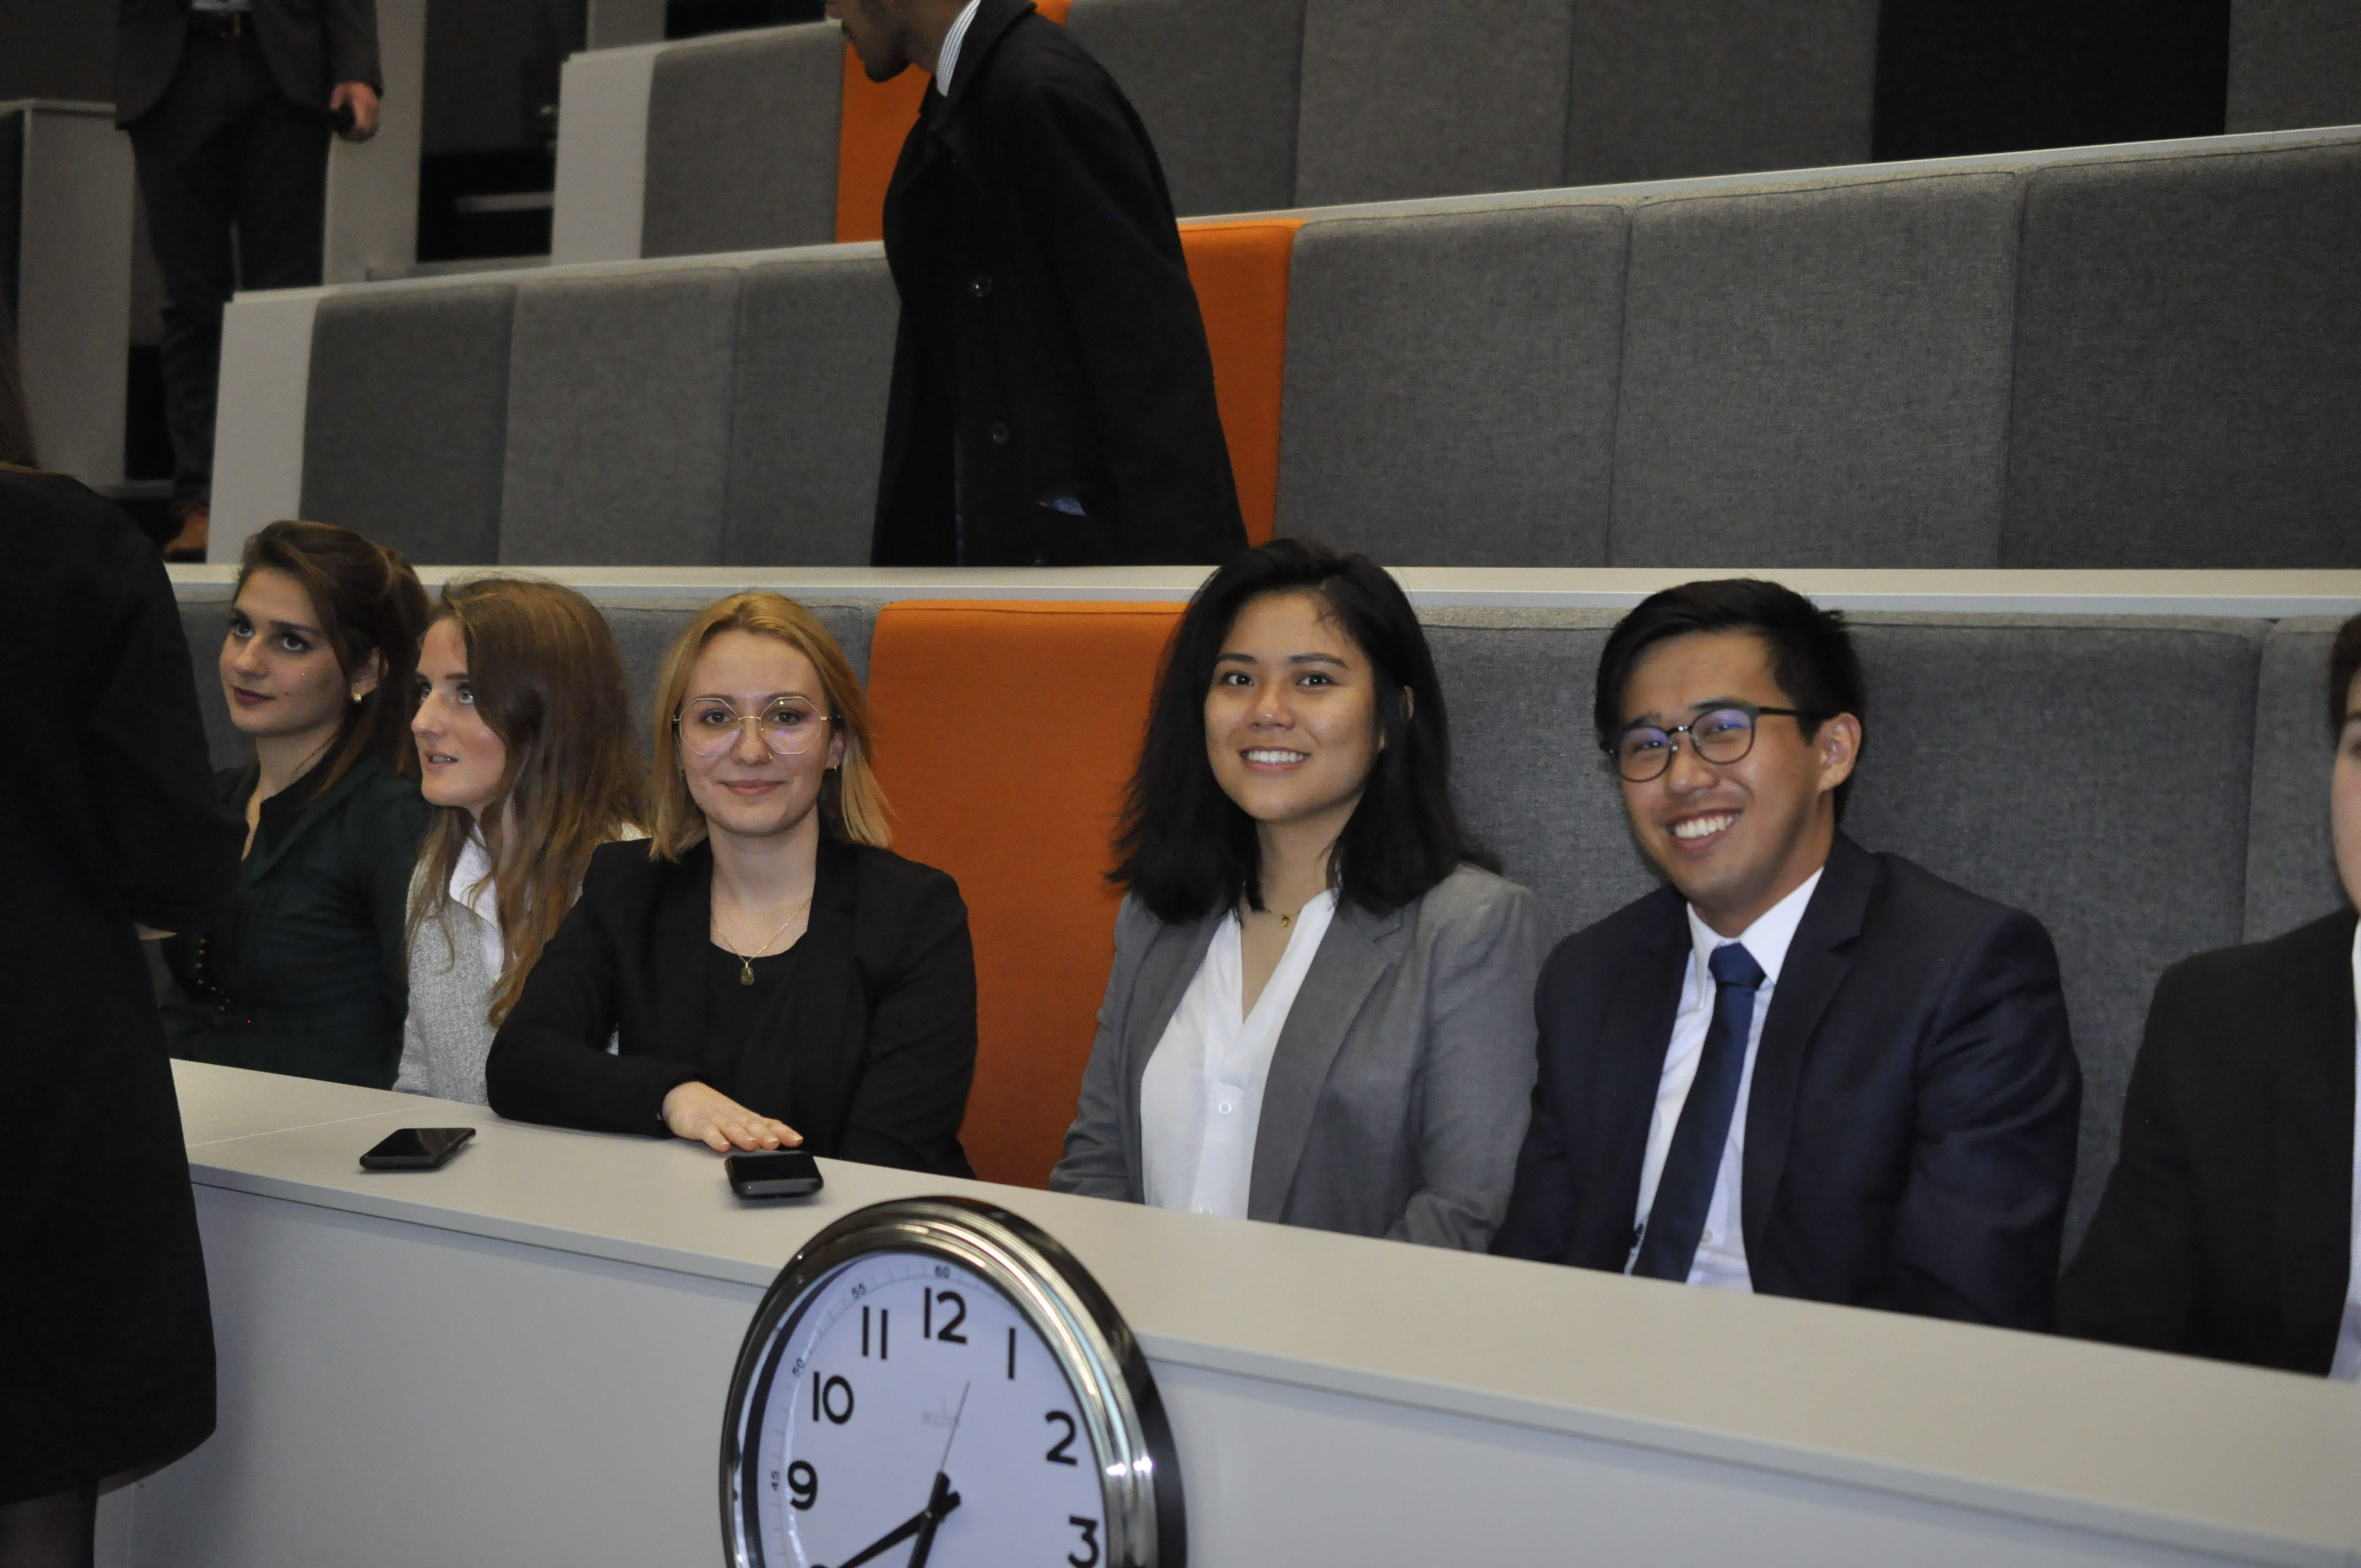 Delegates taking part in negotiations in the lecture theatre